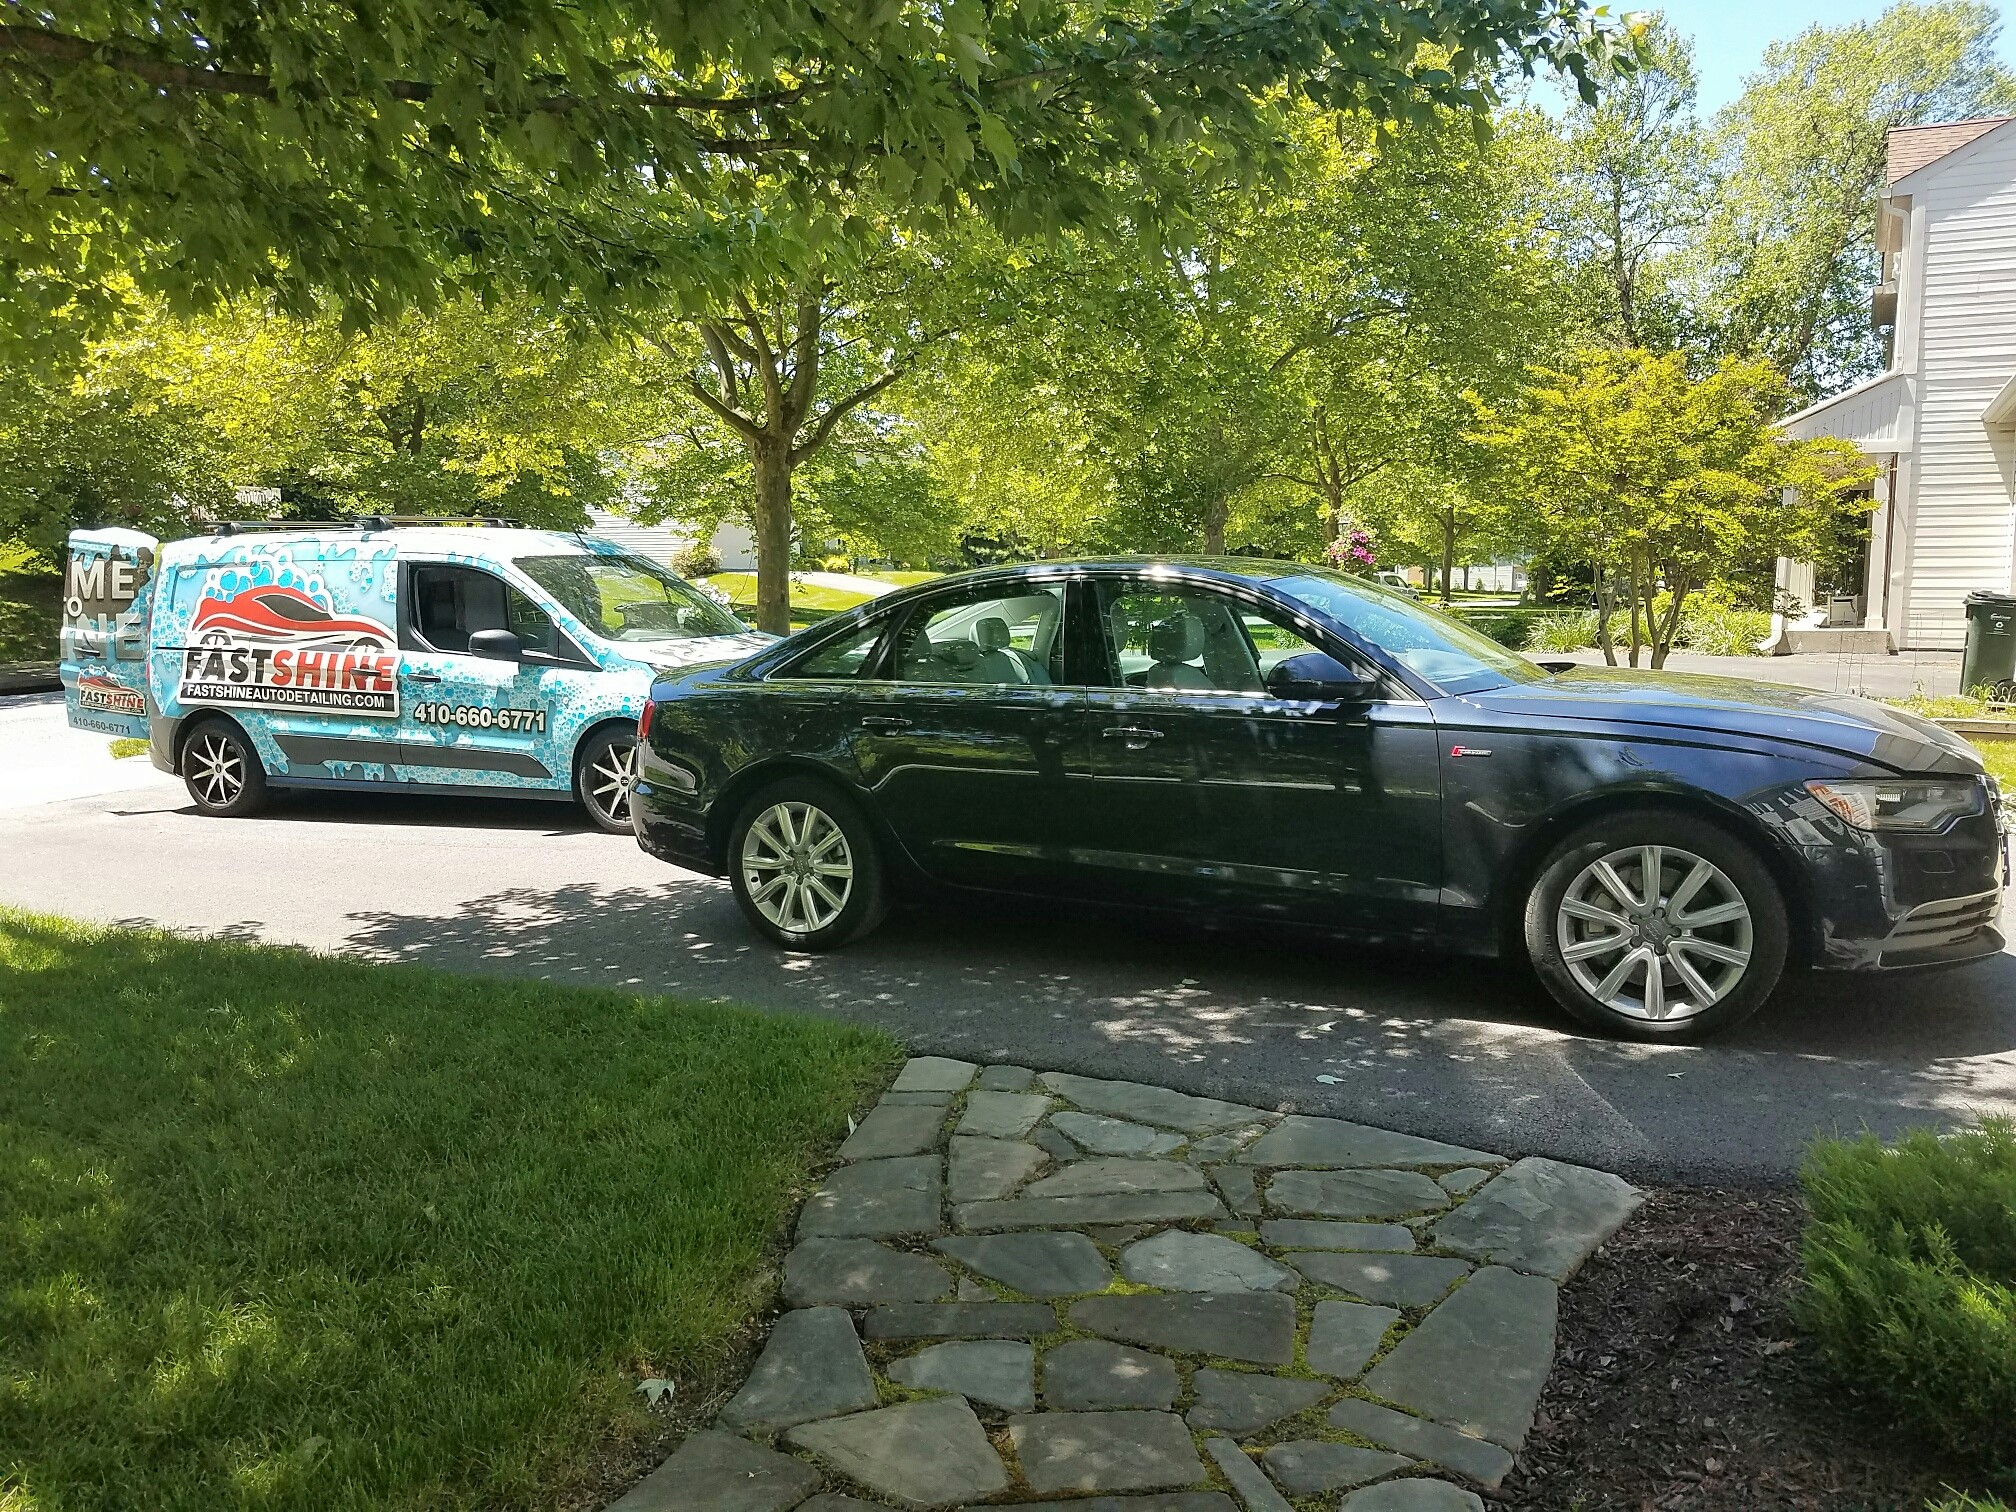 Auto Detailing Services around Maryland